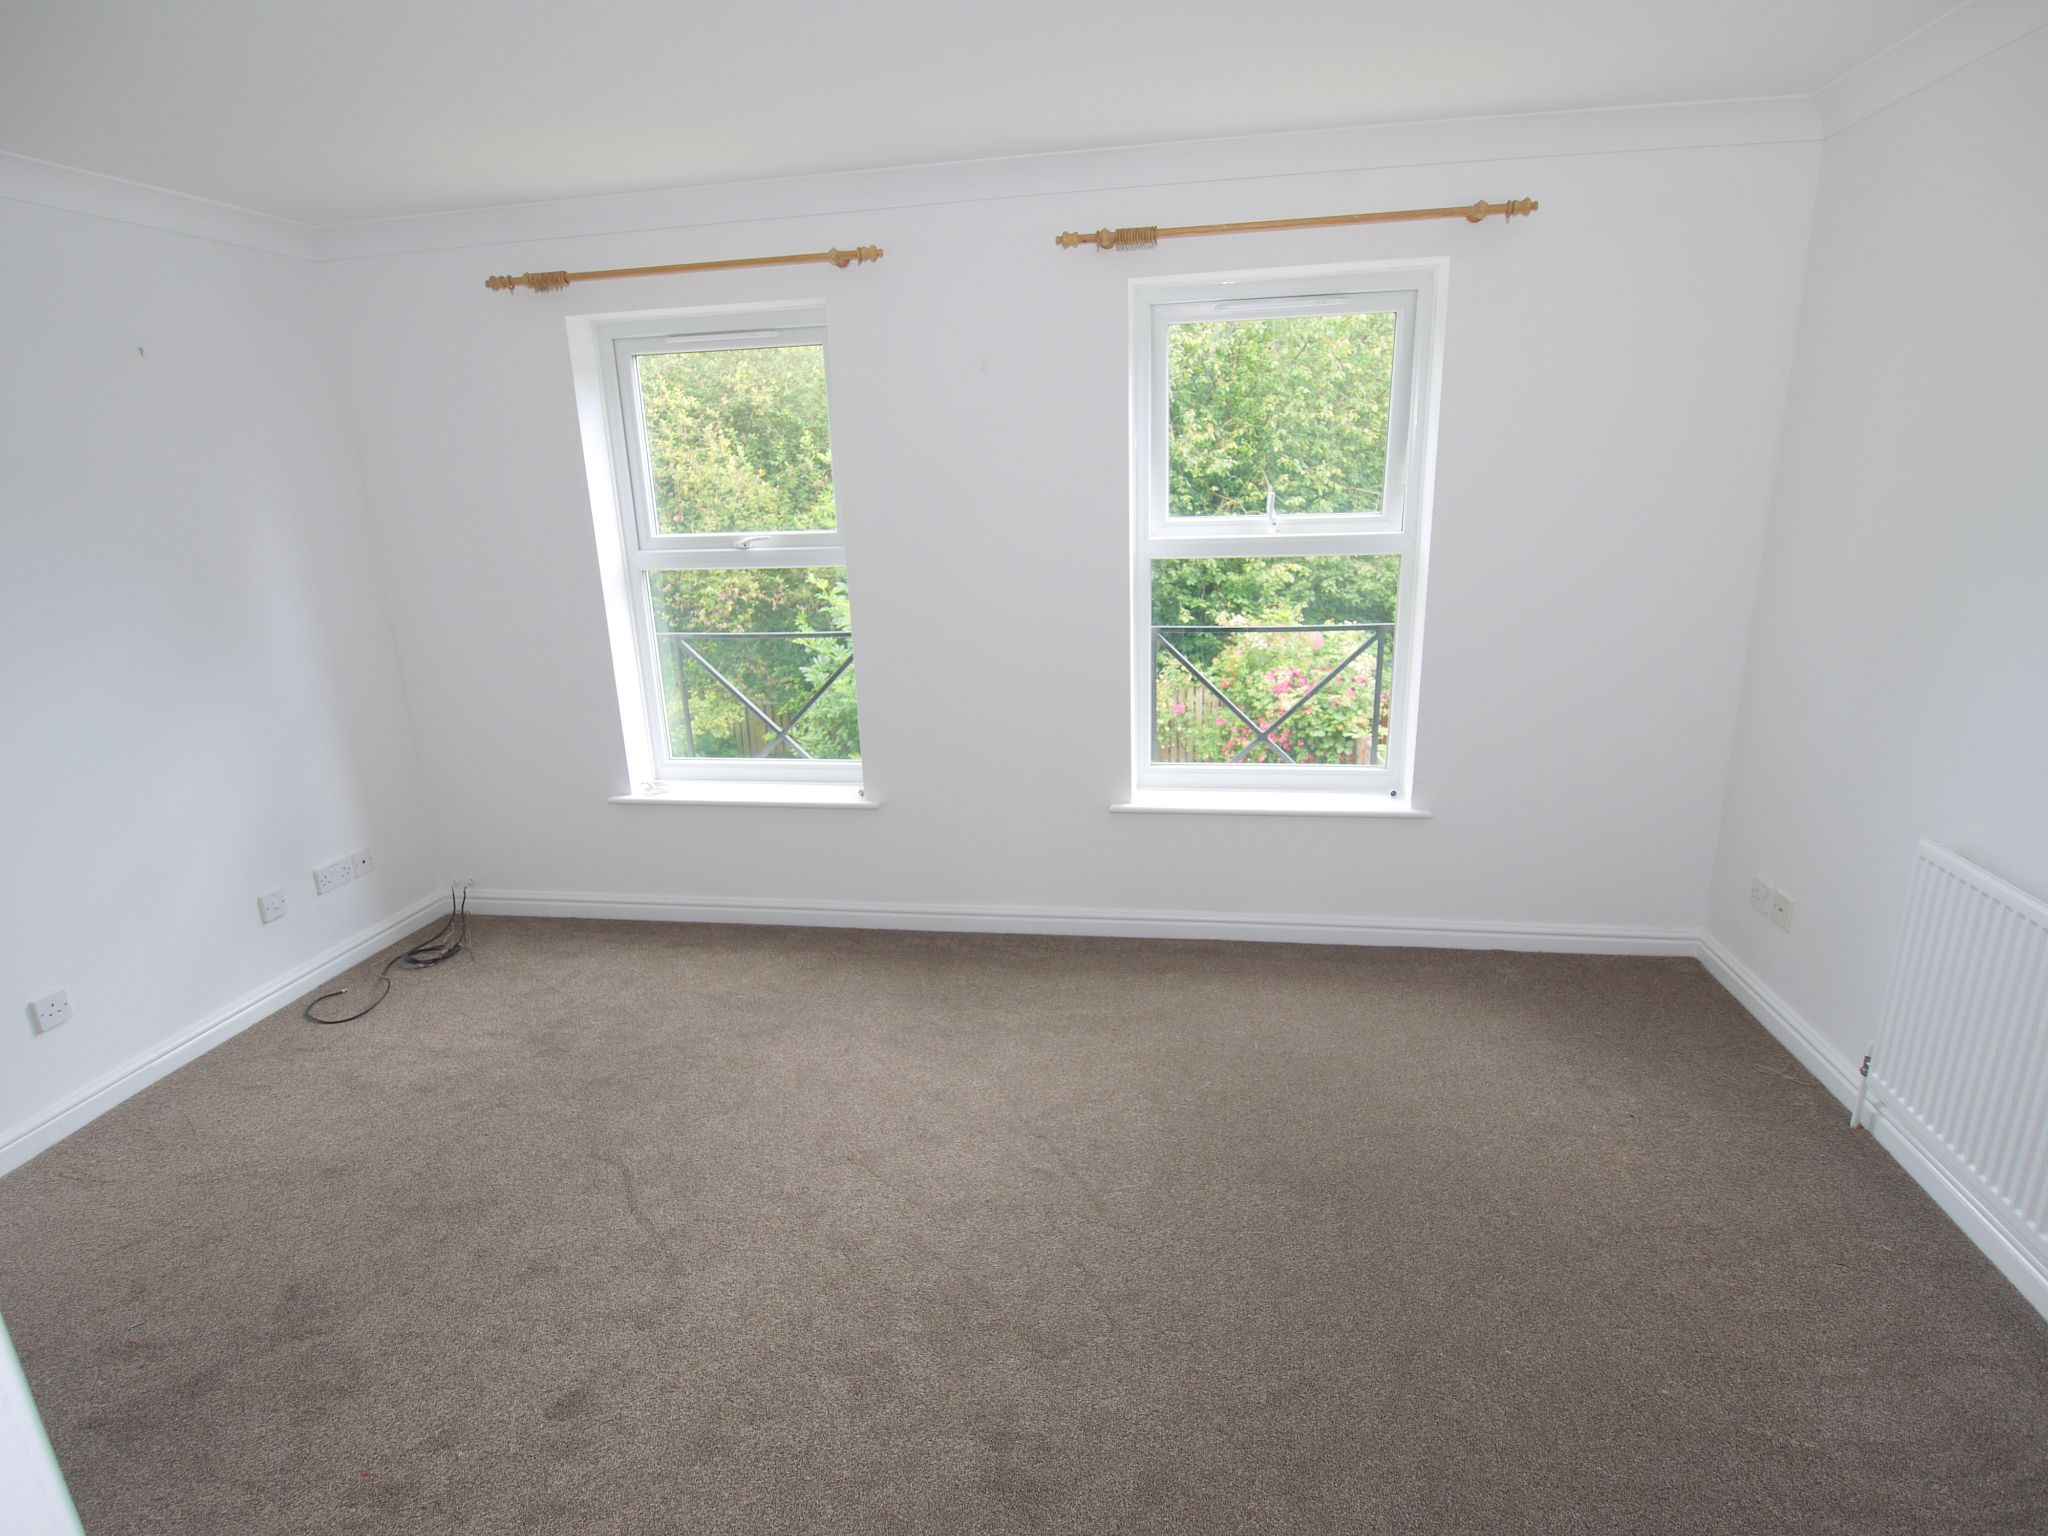 4 bedroom town house For Sale in Sevenoaks - Photograph 4